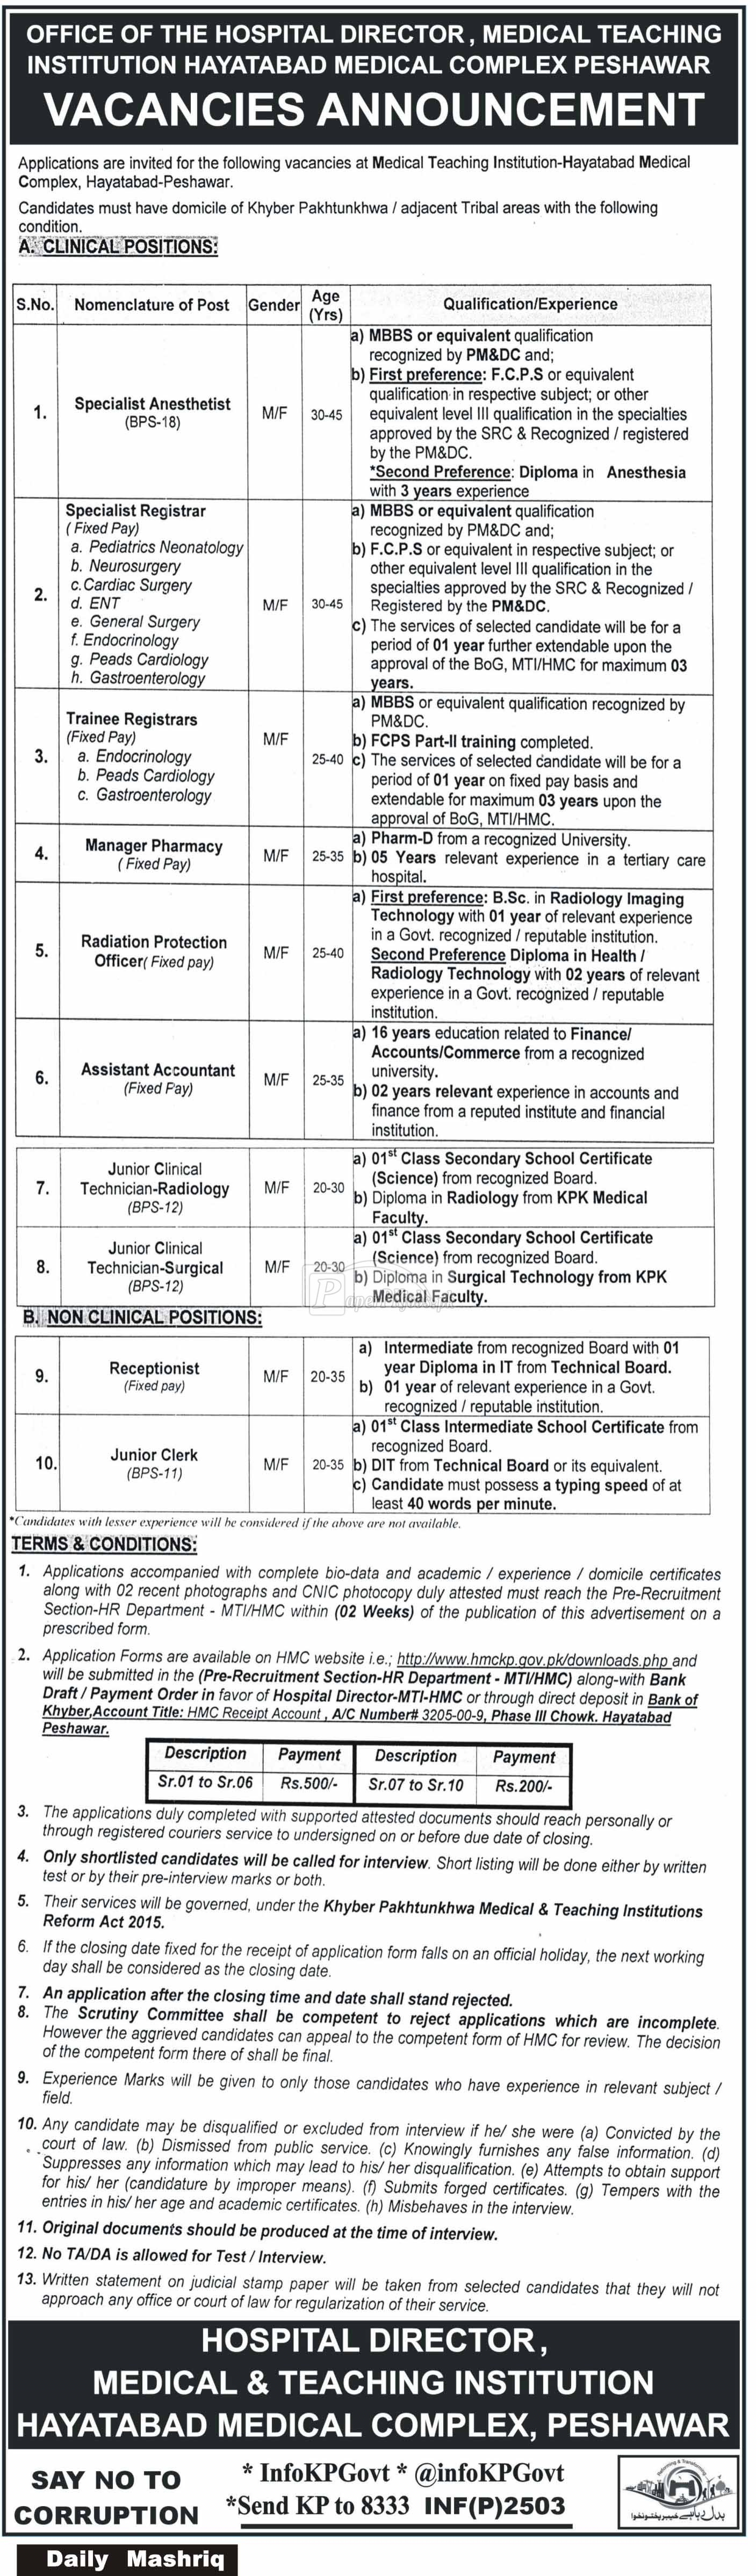 Medical Teaching Institution Hayatabad Peshawar Jobs 2018